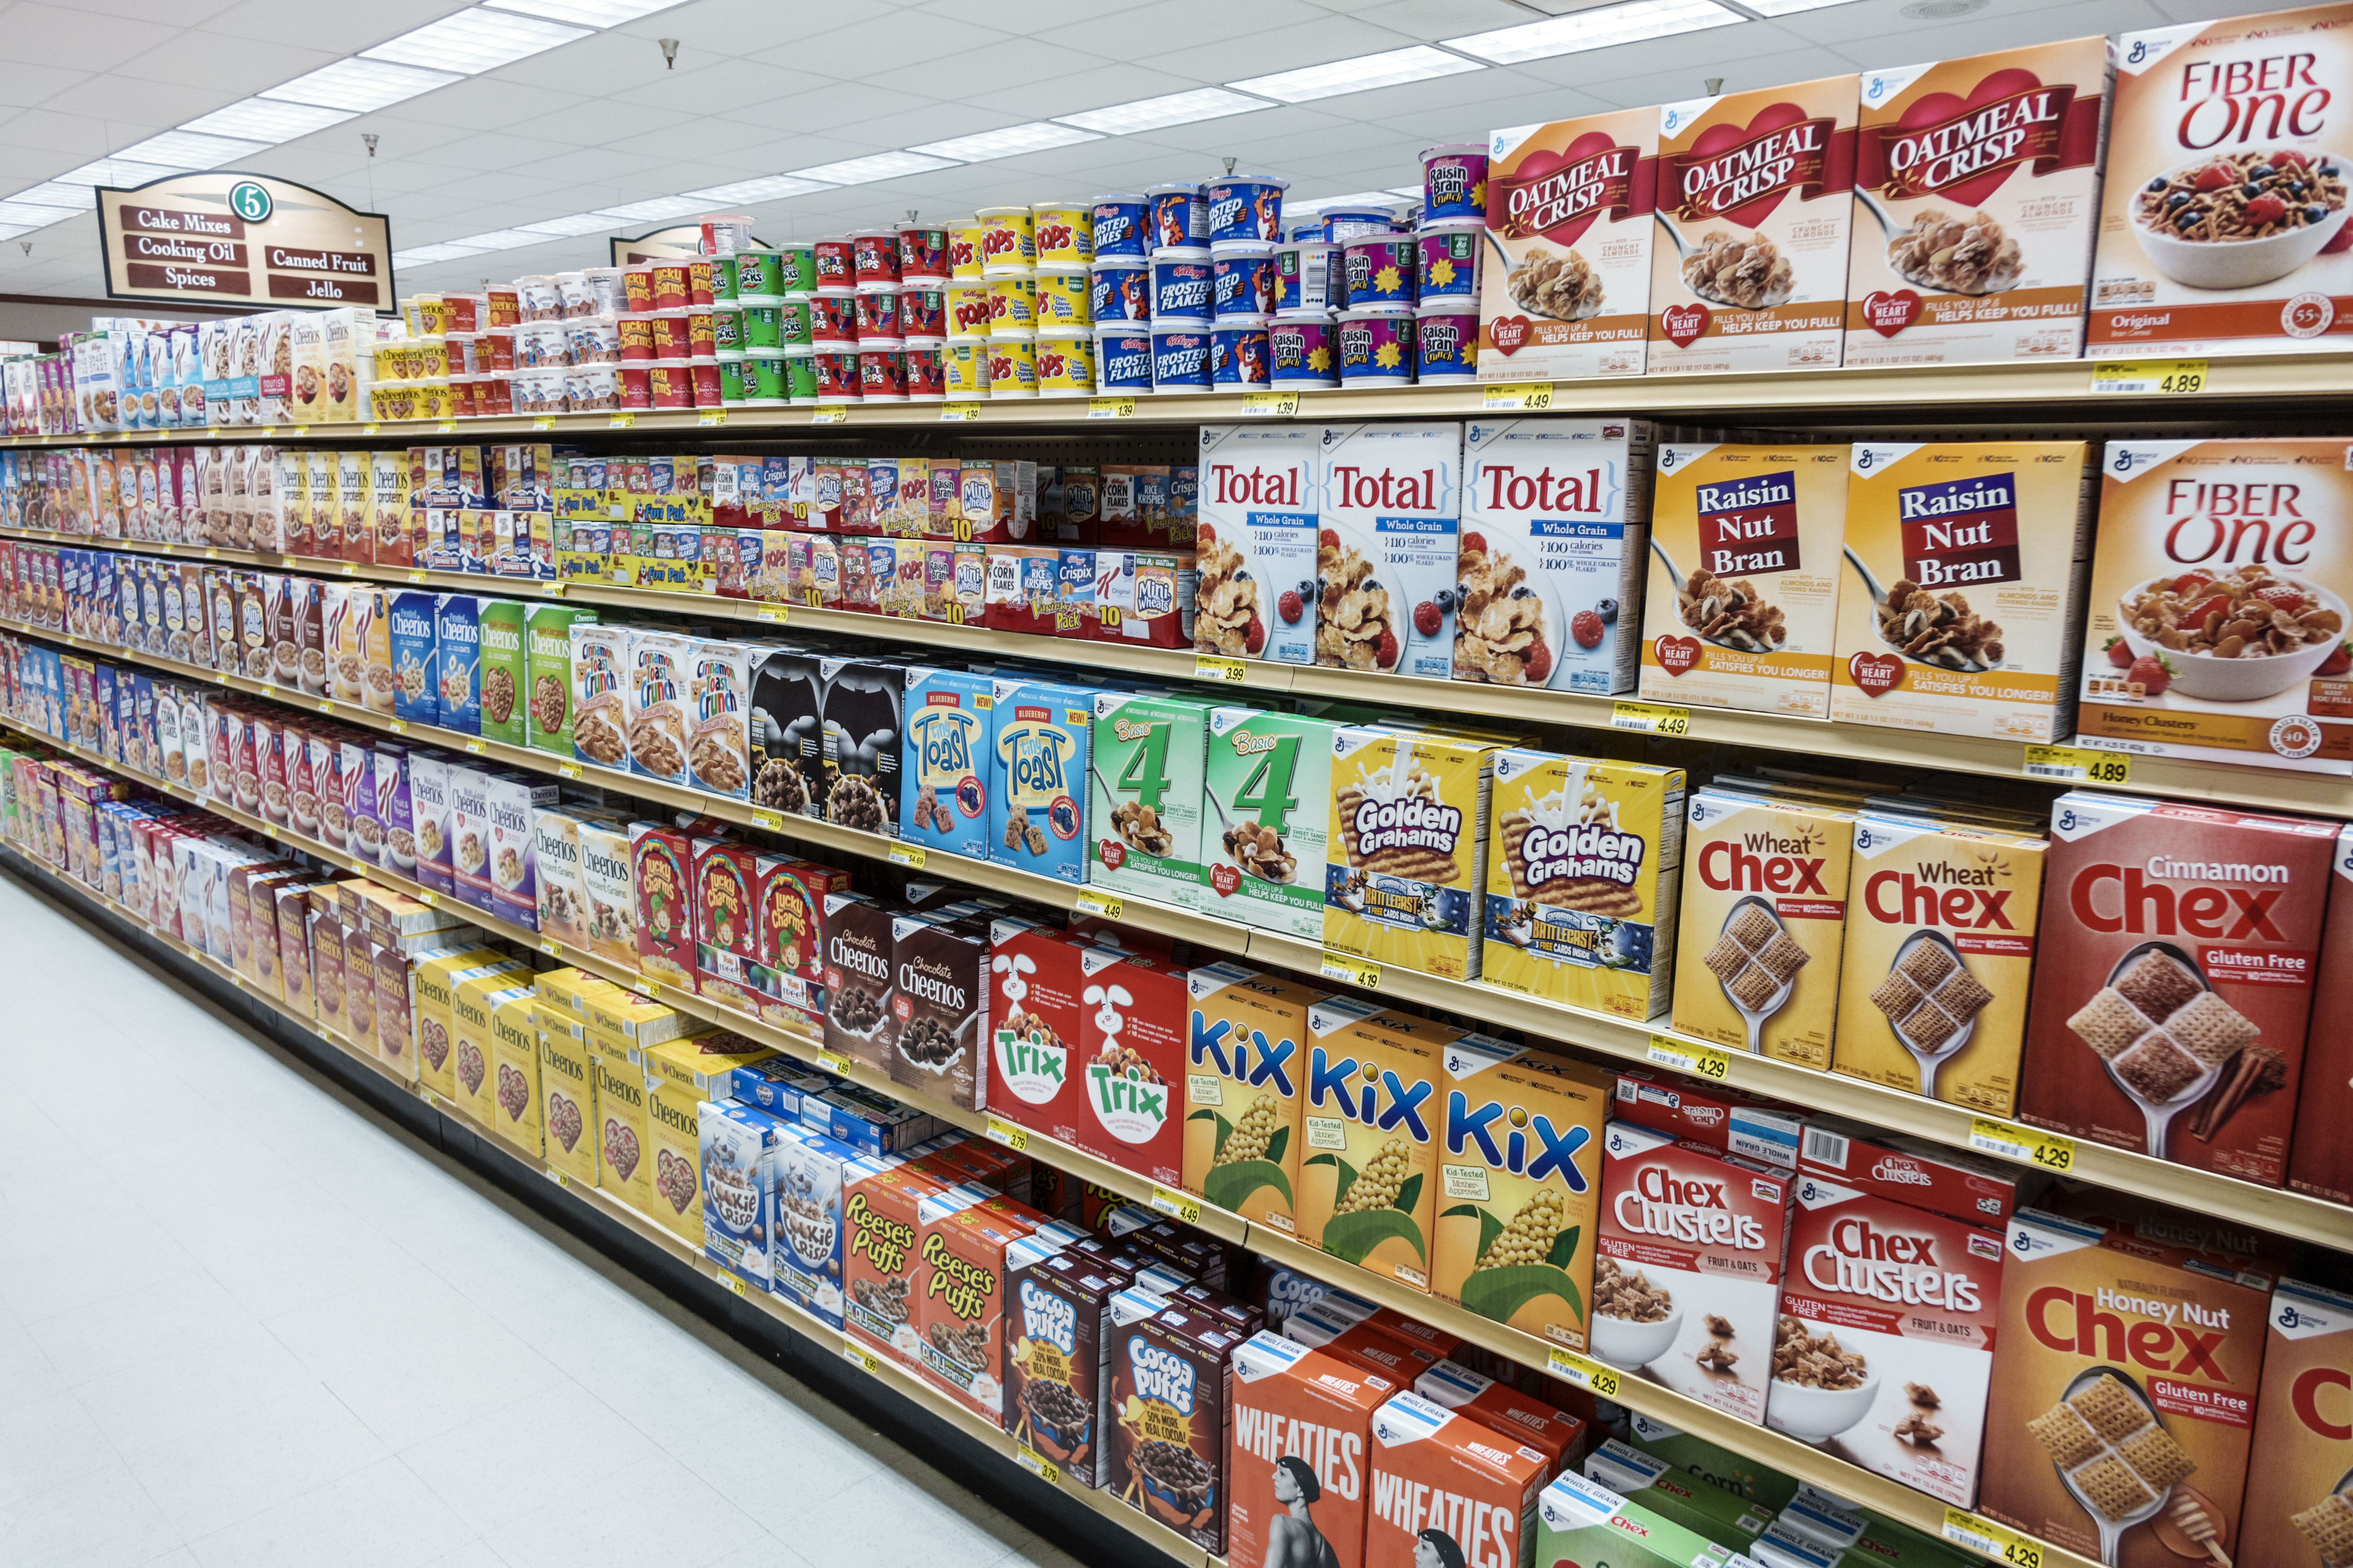 A cereal draft, because we are a sports website